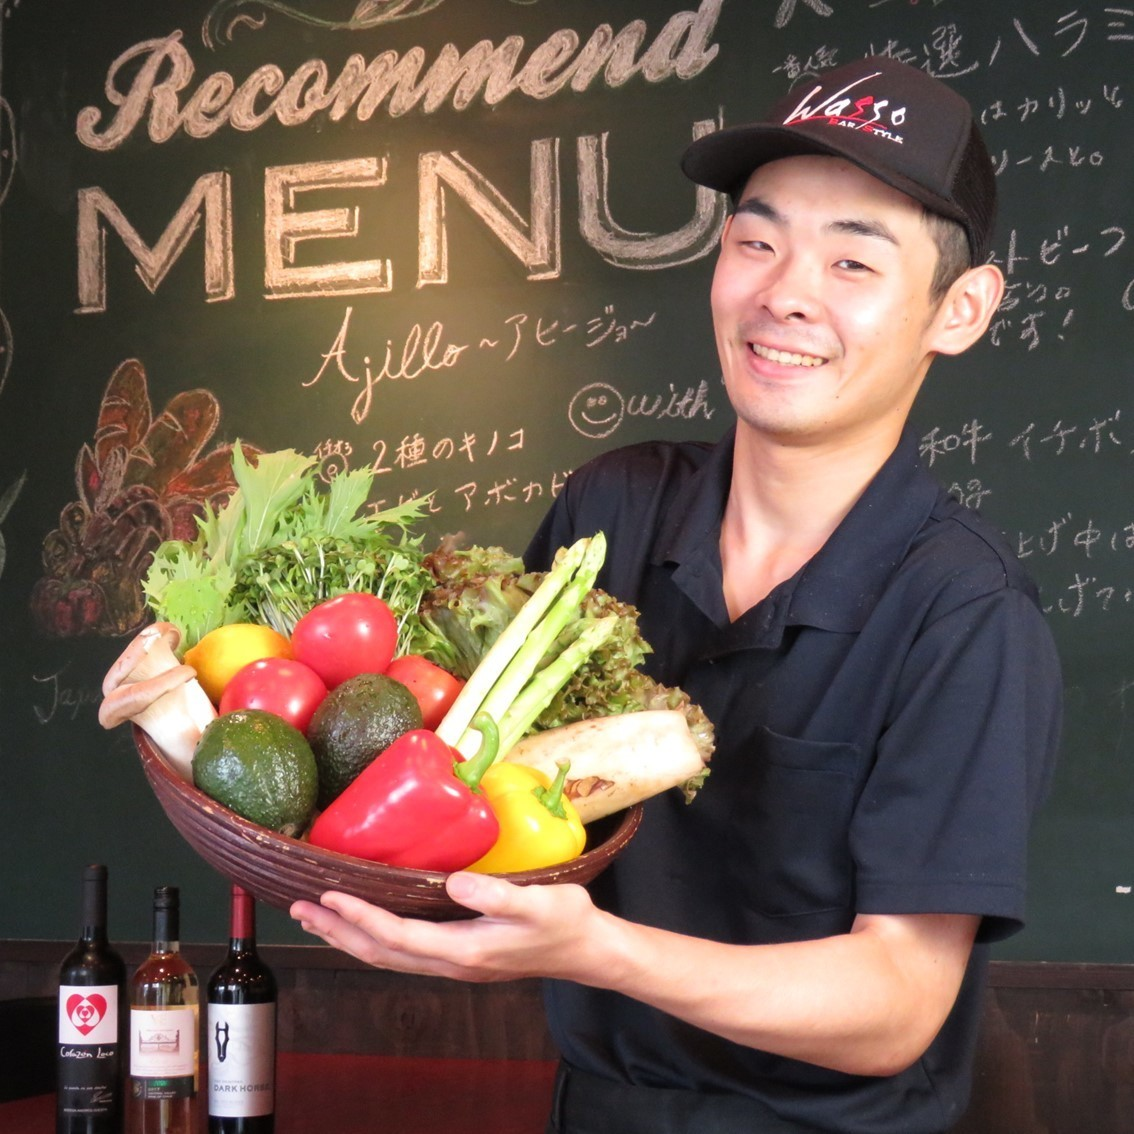 ■ ■ Commitment to vegetables as well as meat ♪